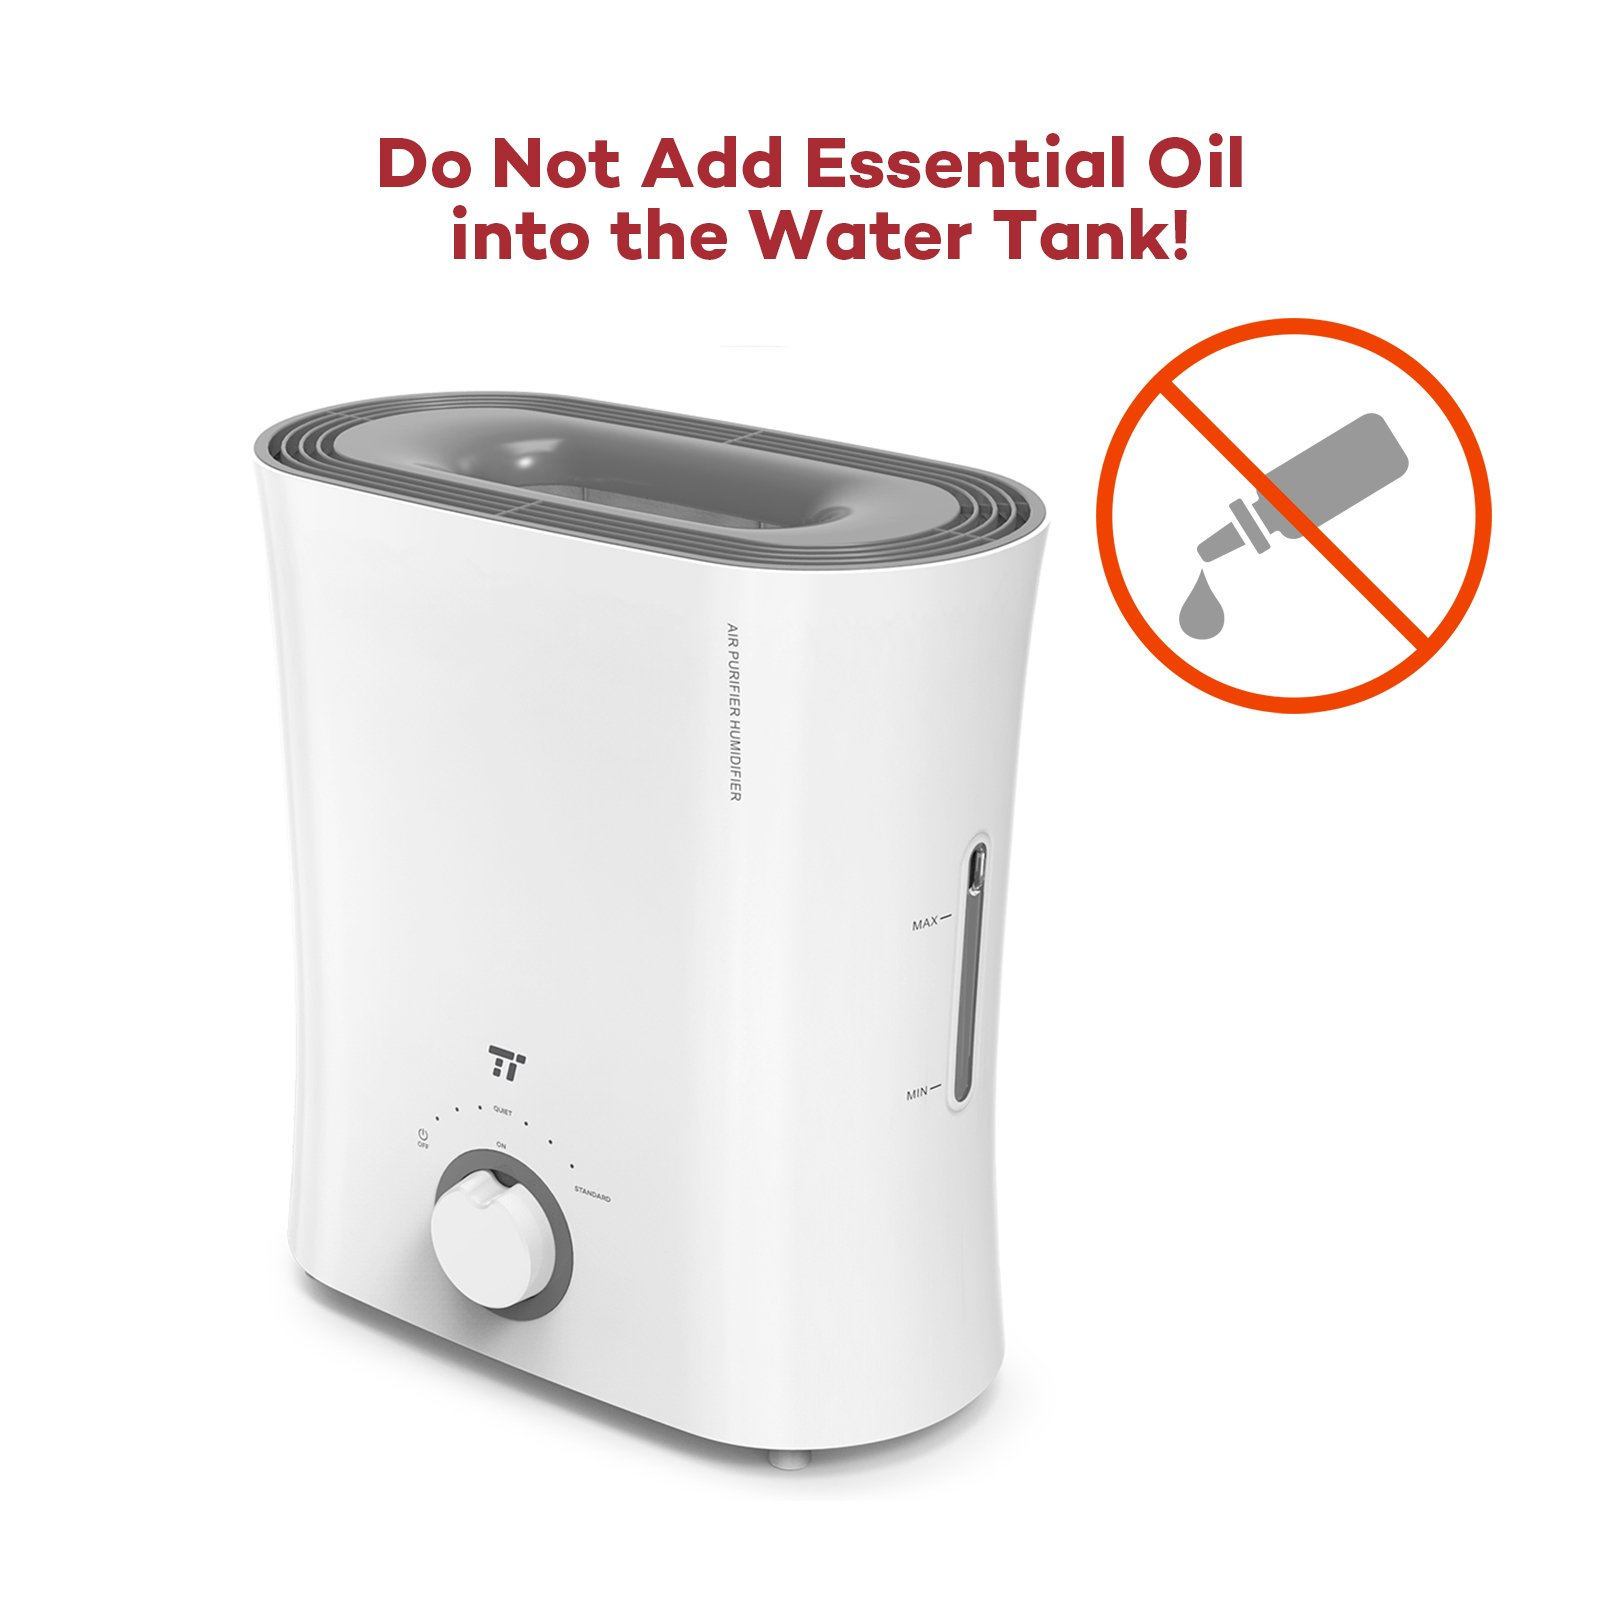 TaoTronics Evaporative Humidifier, Air Purifier, Germ-Free and Invisible Moisture with Wicking Filter, Top Fill Cool Mist Humidifiers for Bedroom, Office and Nursery -(2.5 L/0.66 gal, 110V) by TaoTronics (Image #7)